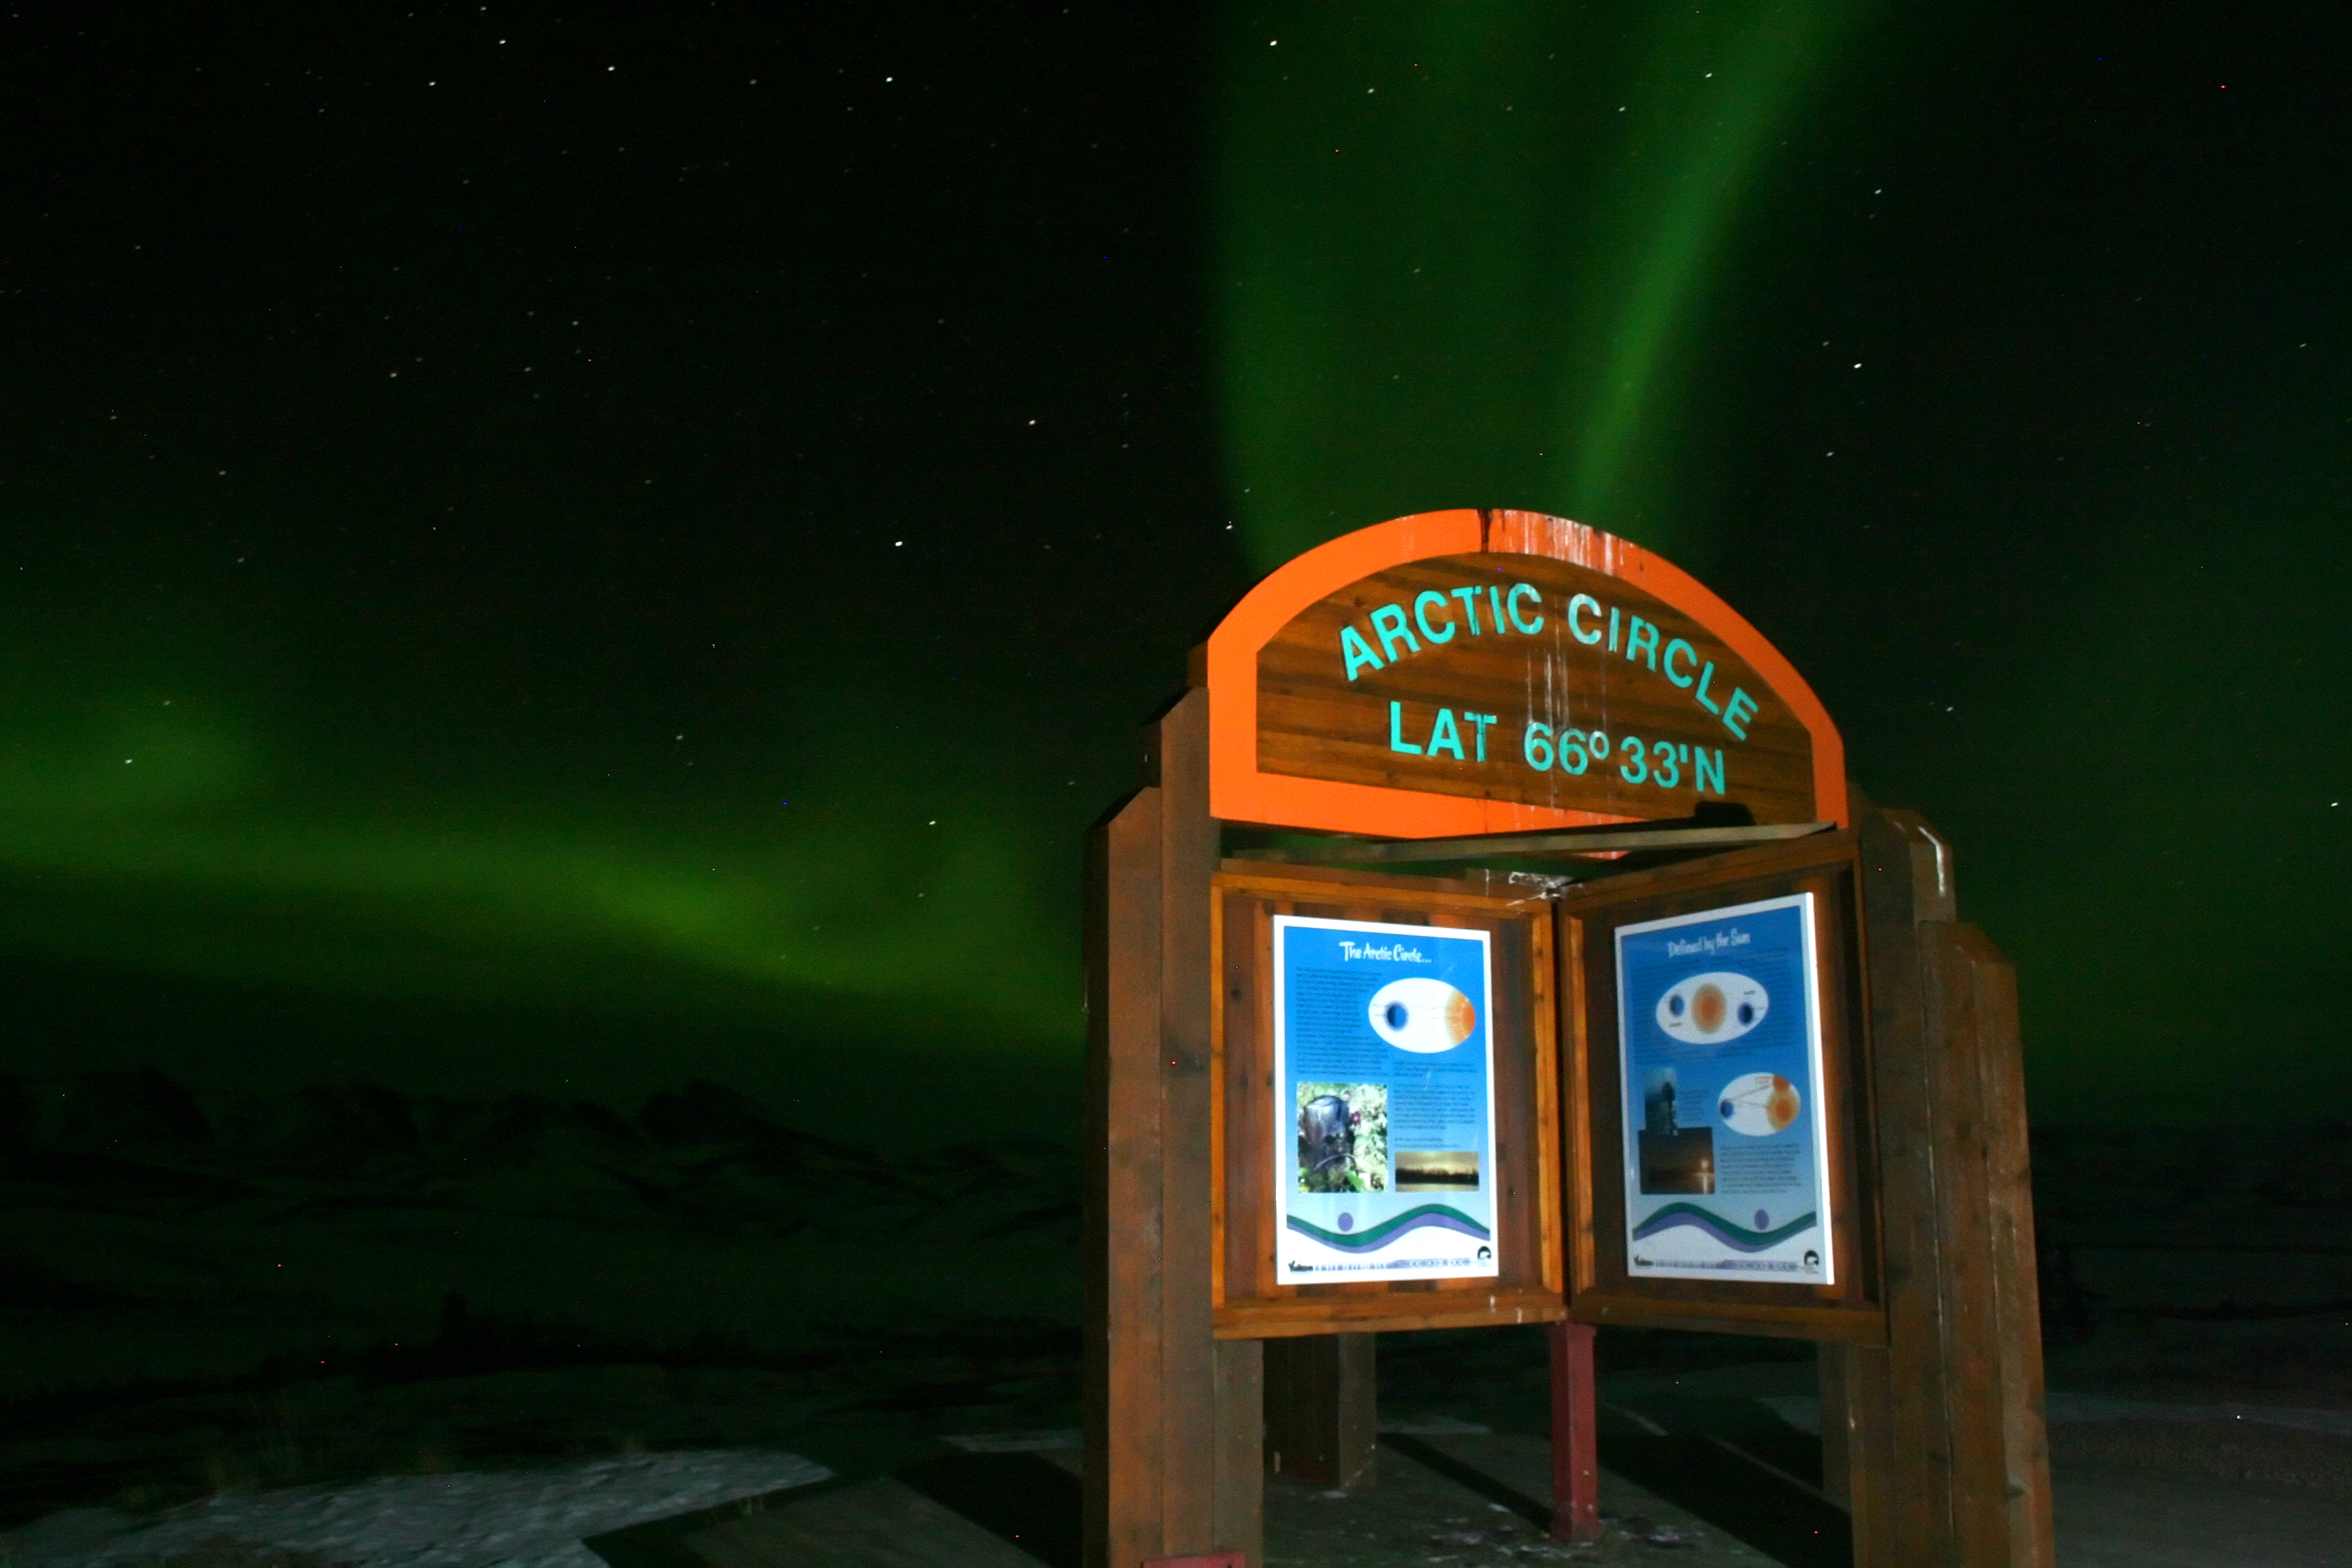 Beyond Brrr 45 Photos of the Real North Pole and Arctic